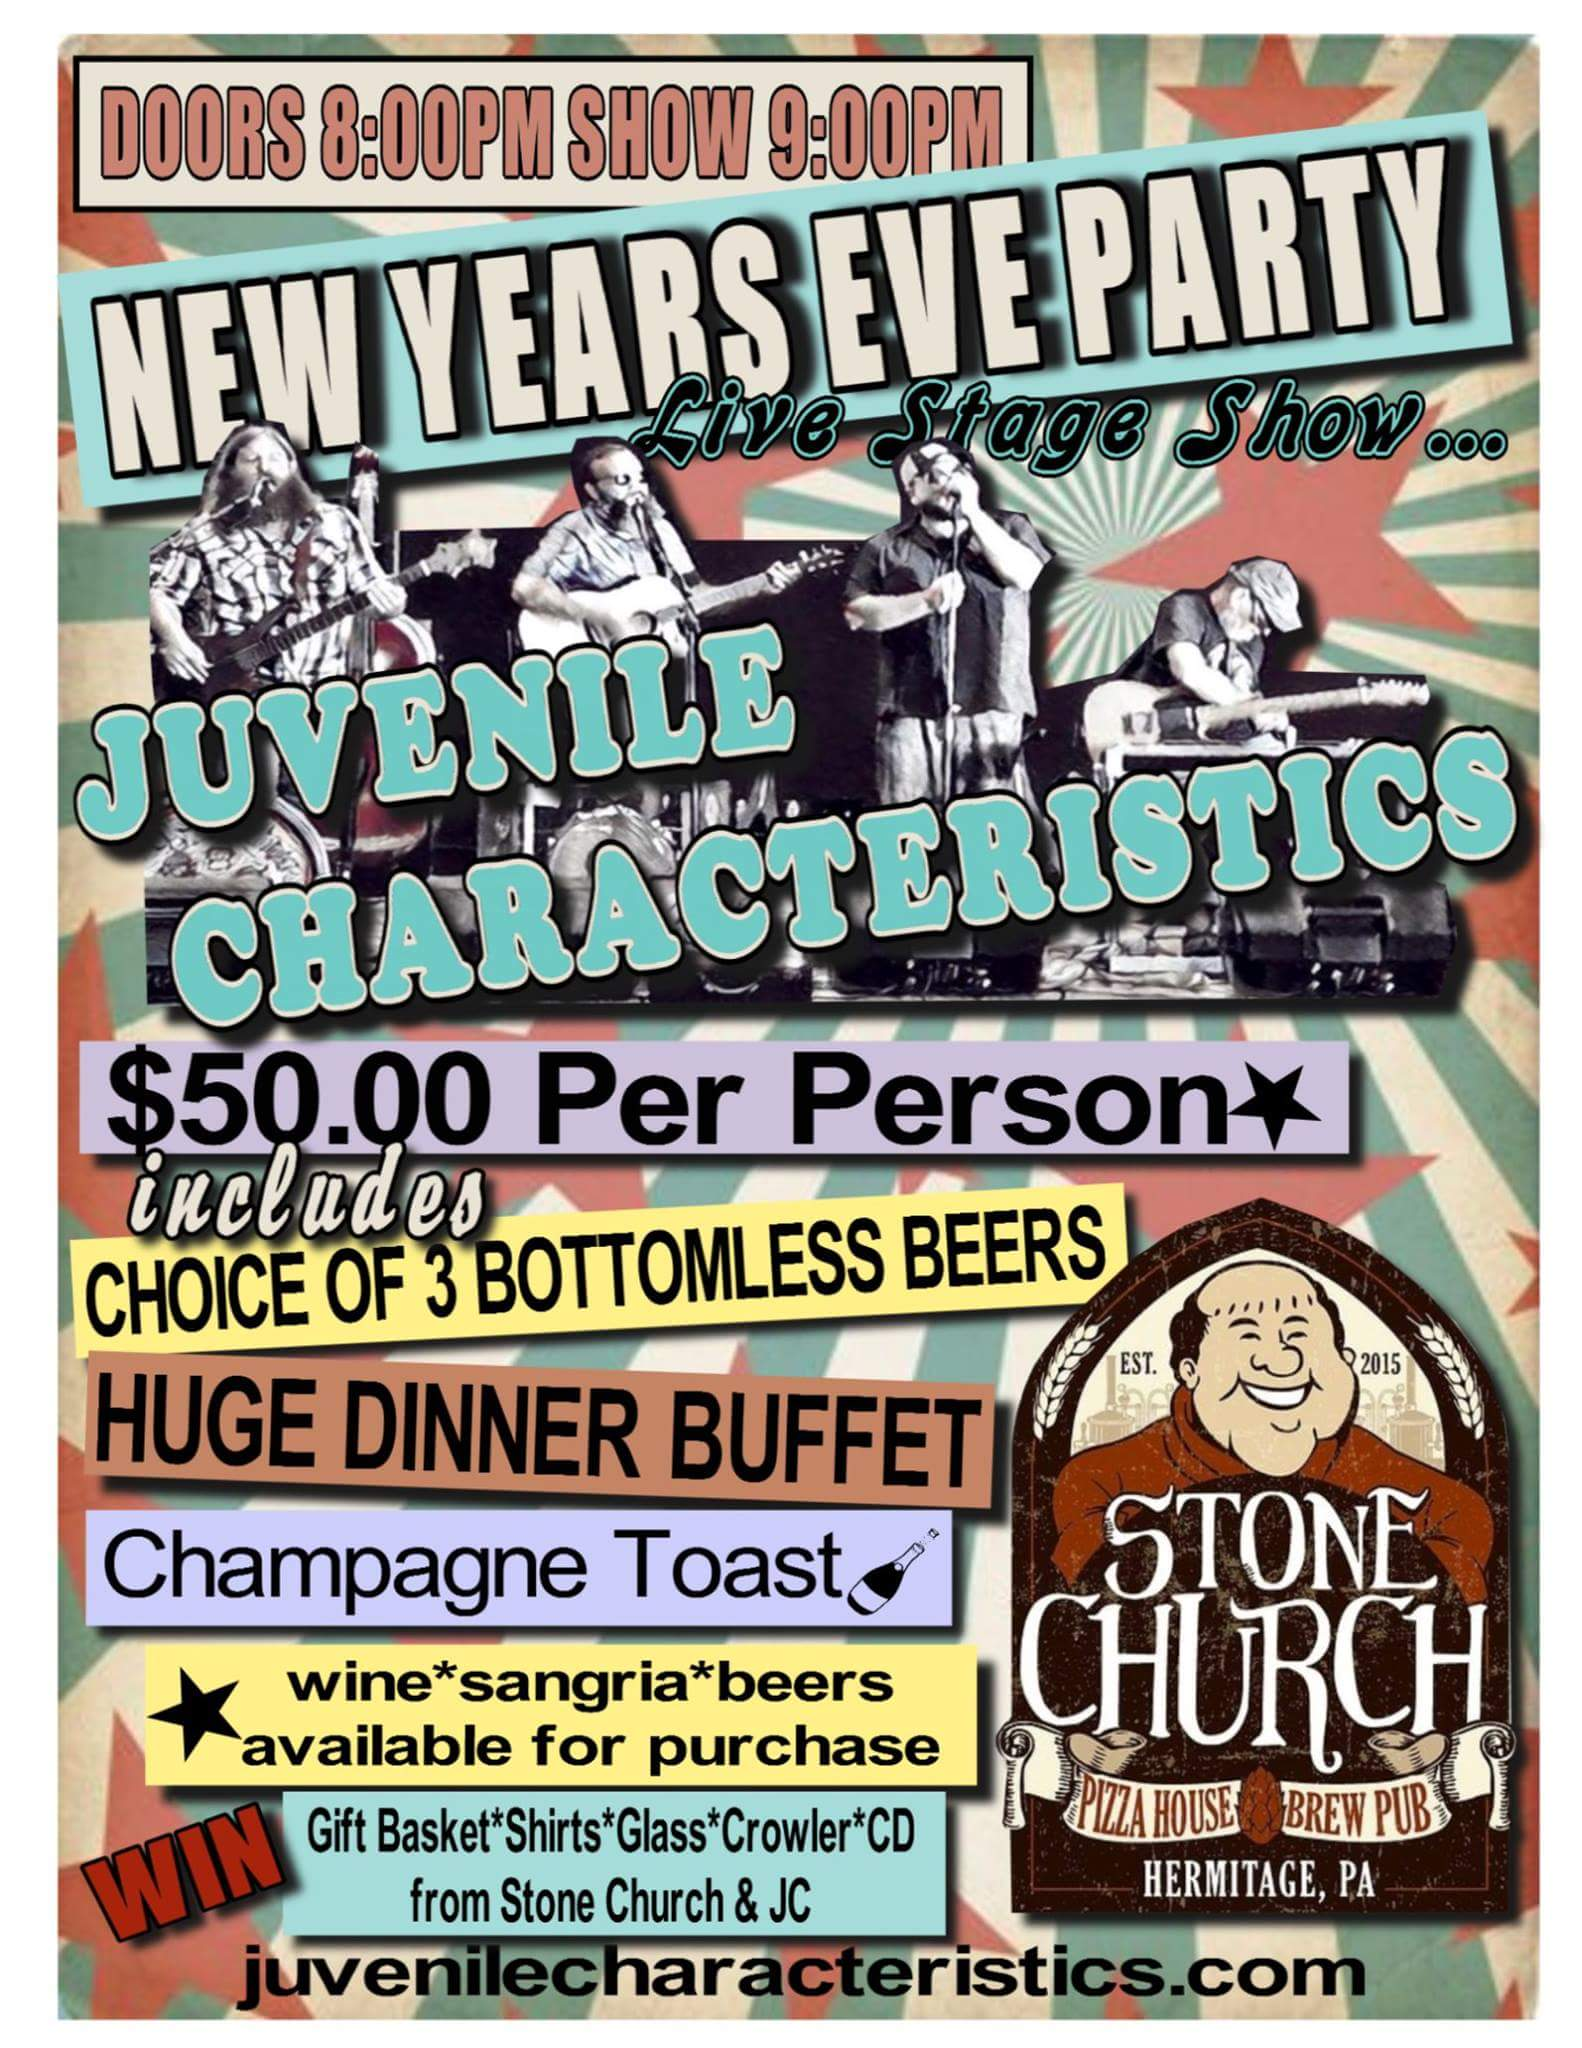 New Year's @ Stone Church 12/31/17